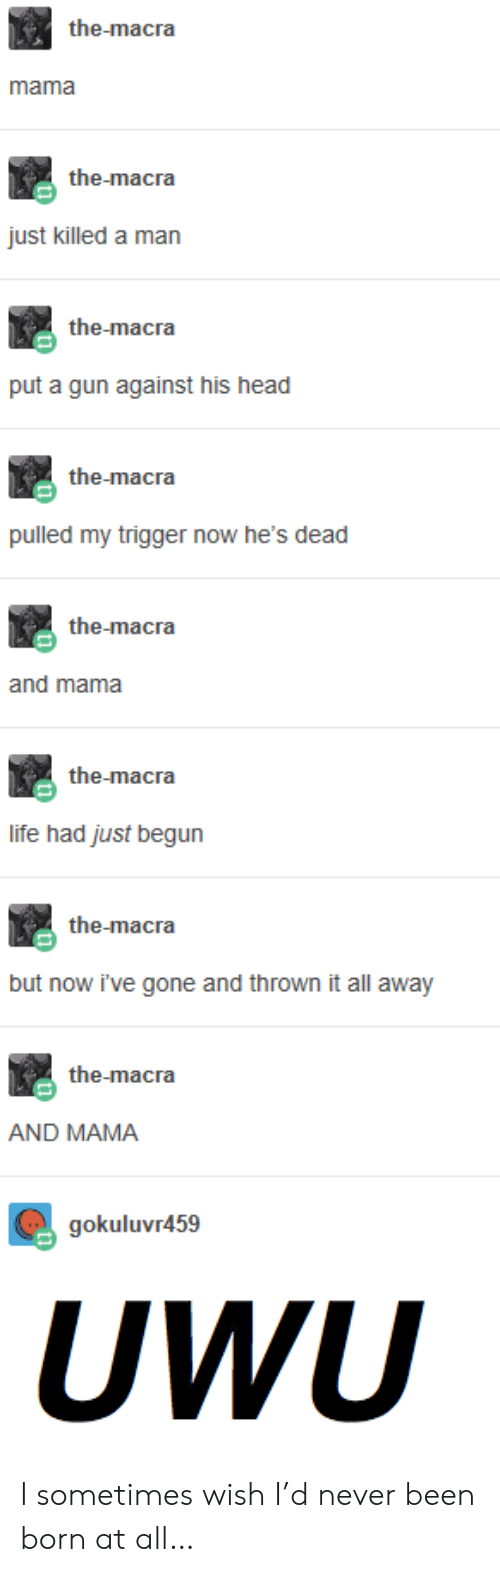 Just Killed A Man: the-macra  mama  the-macra  just killed a man  the-macra  put a gun against his head  the-macra  pulled my trigger now he's dead  the-macra  and mama  the-macra  life had just begun  the-macra  but now i've gone and thrown it all away  the-macra  AND MAMA  gokuluvr459  UWU I sometimes wish I'd never been born at all…